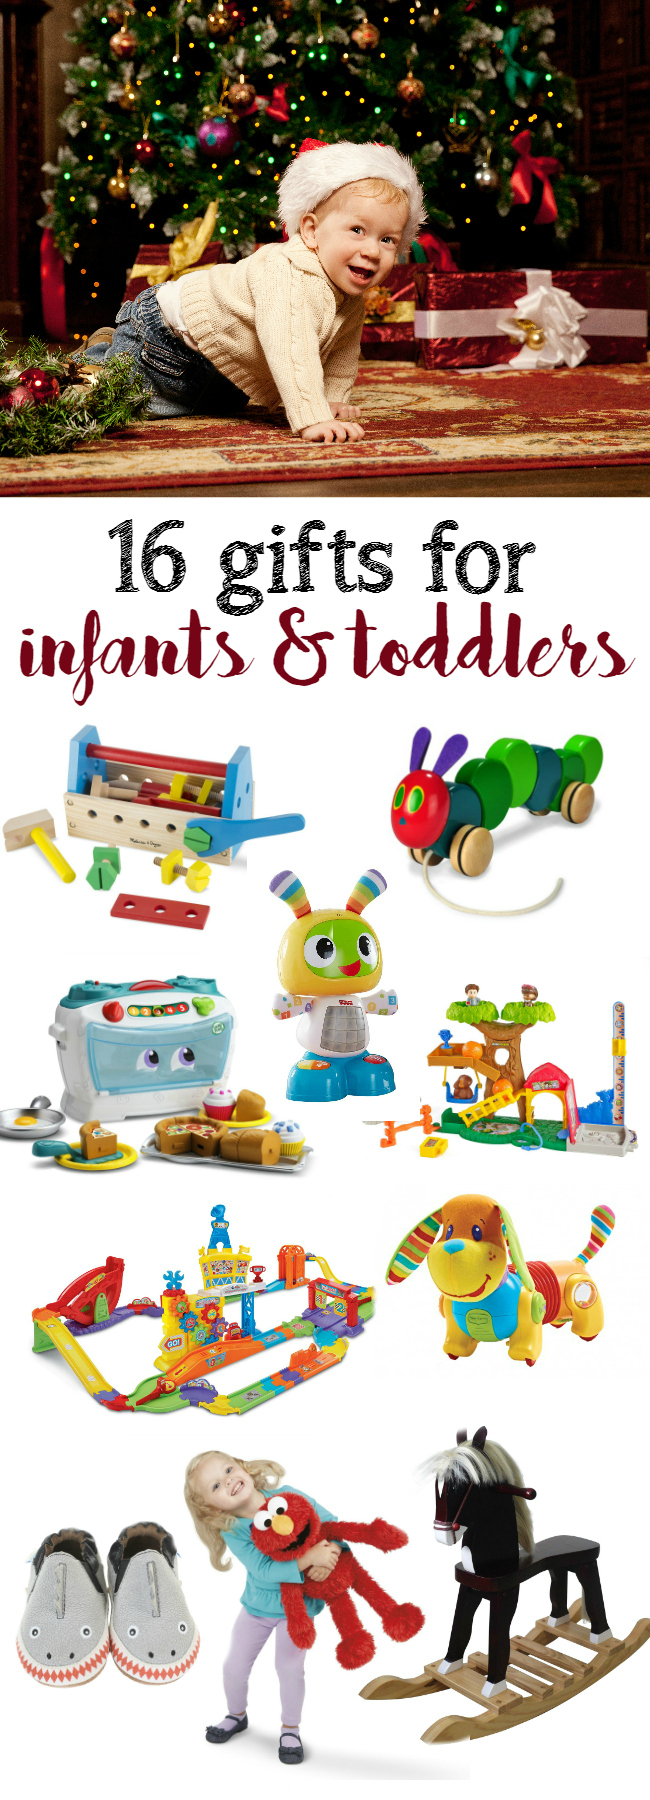 16 gifts for infants and toddlers